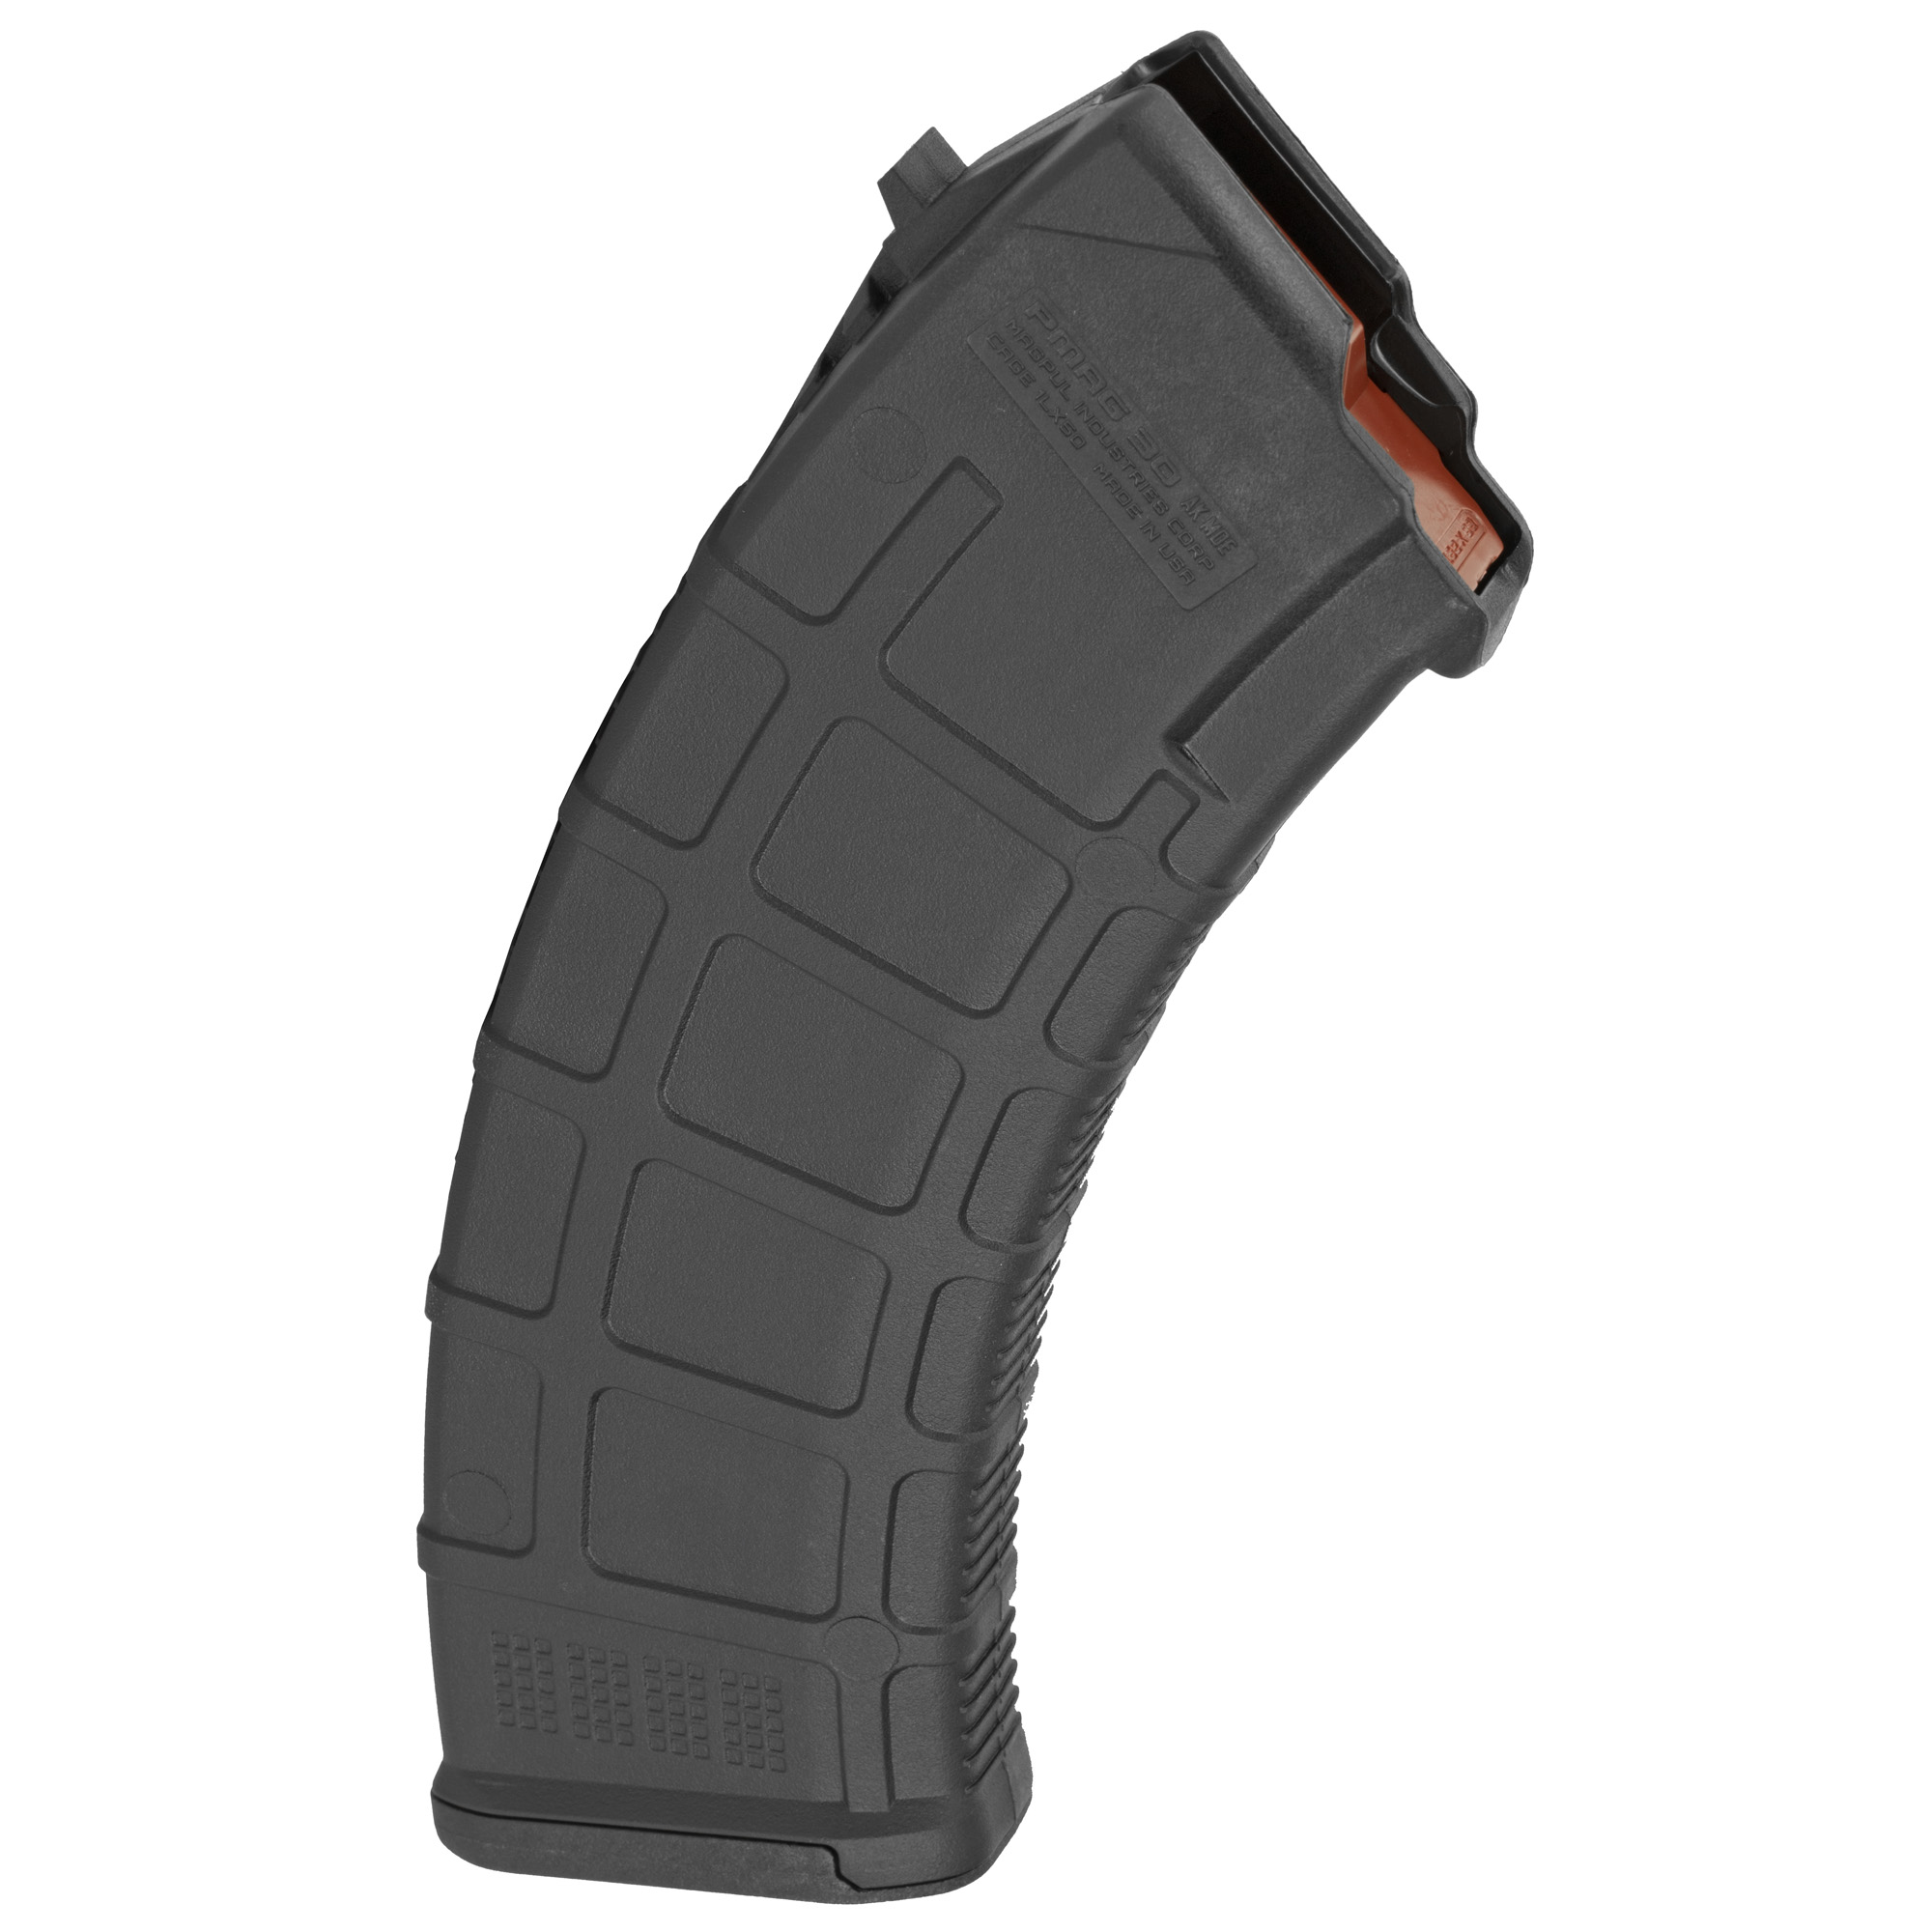 """The PMAG 30 AK/AKM MOE is an inexpensive"""" lightweight"""" high reliability 30-round polymer magazine designed for Kalashnikov pattern rifles in 7.62x39mm (AK-47"""" AKM"""" AKS"""" SIG556R and others.) It features a removable floorplate"""" constant curve geometry"""" and a high-reliability/low-friction follower for the affordable performance you expect from a MOE PMAG."""